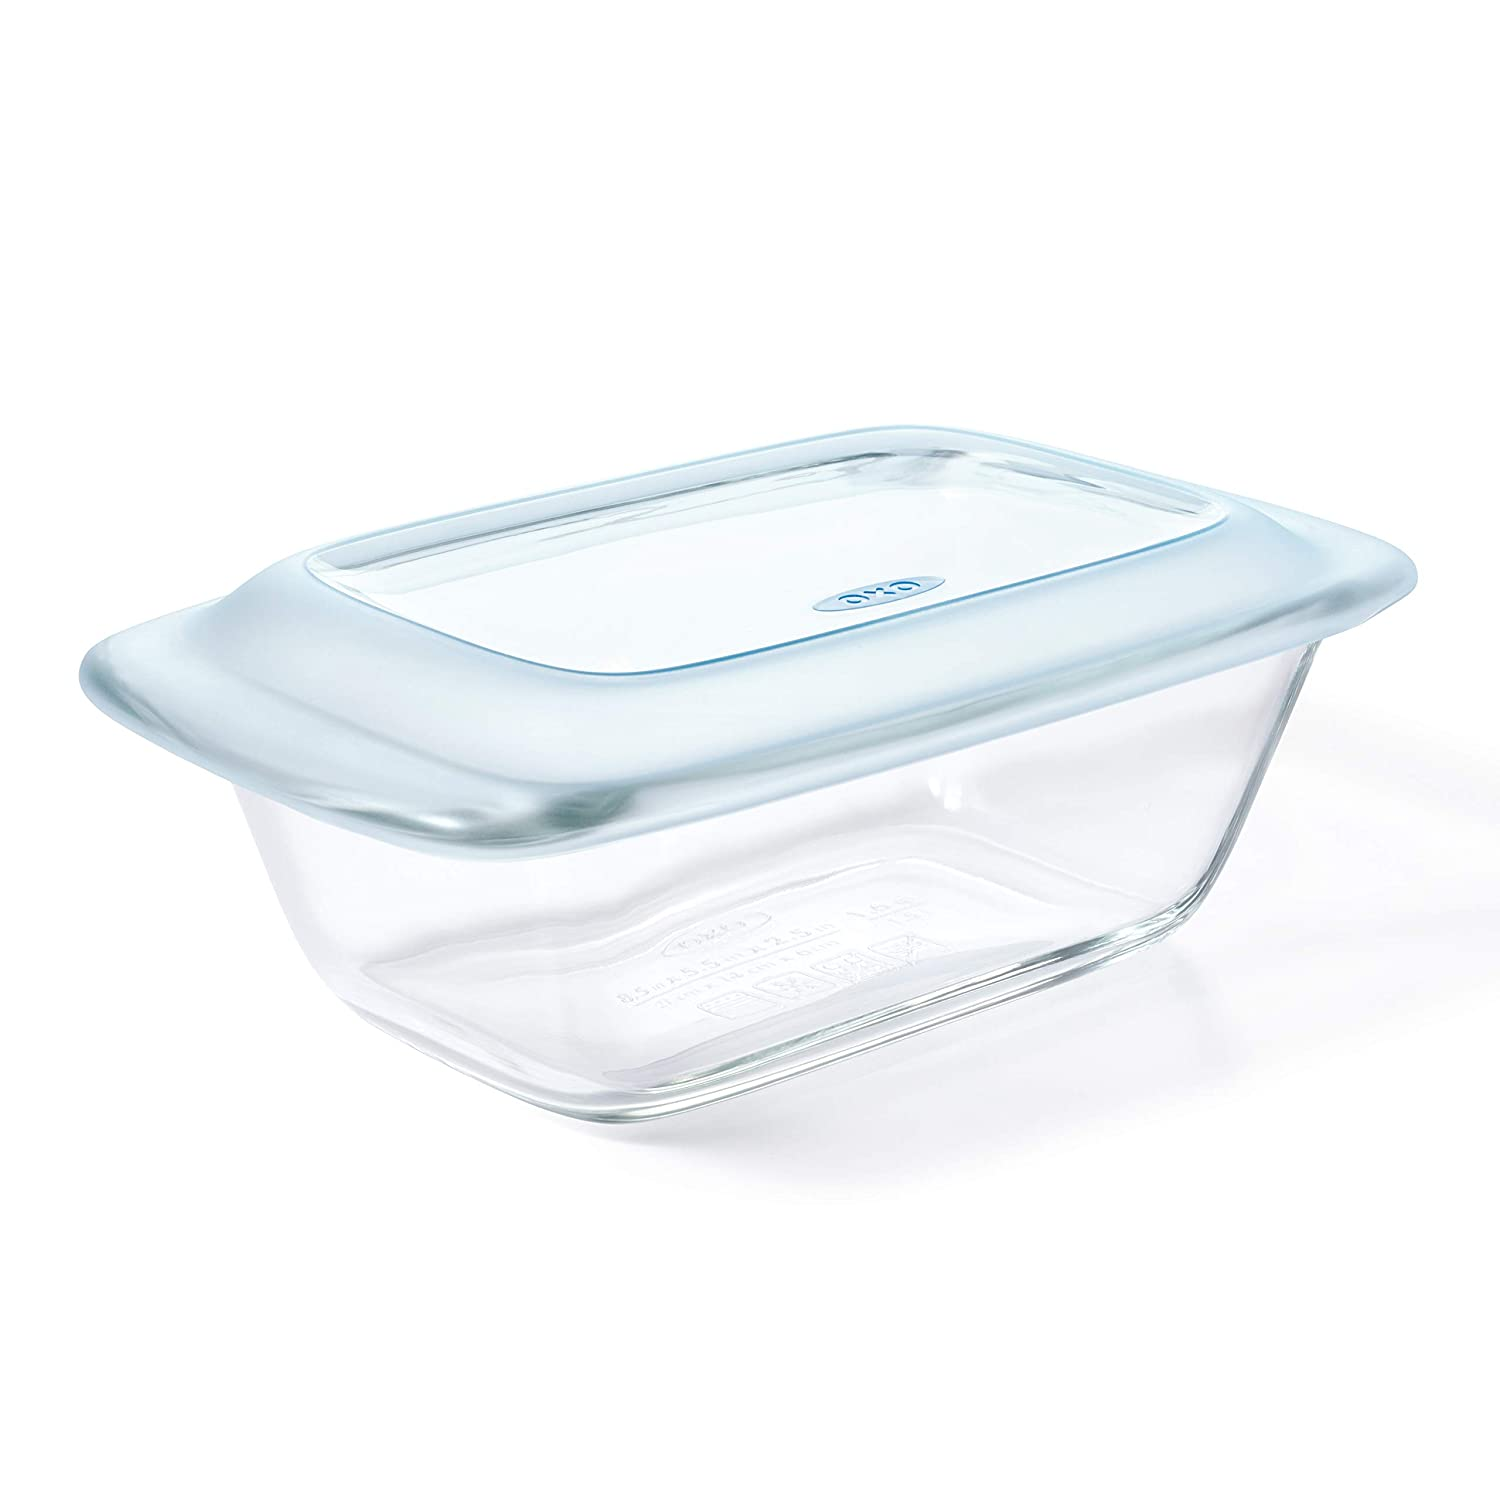 OXO 11249200 Good Grips Glass Loaf Pan with Lid, One Size